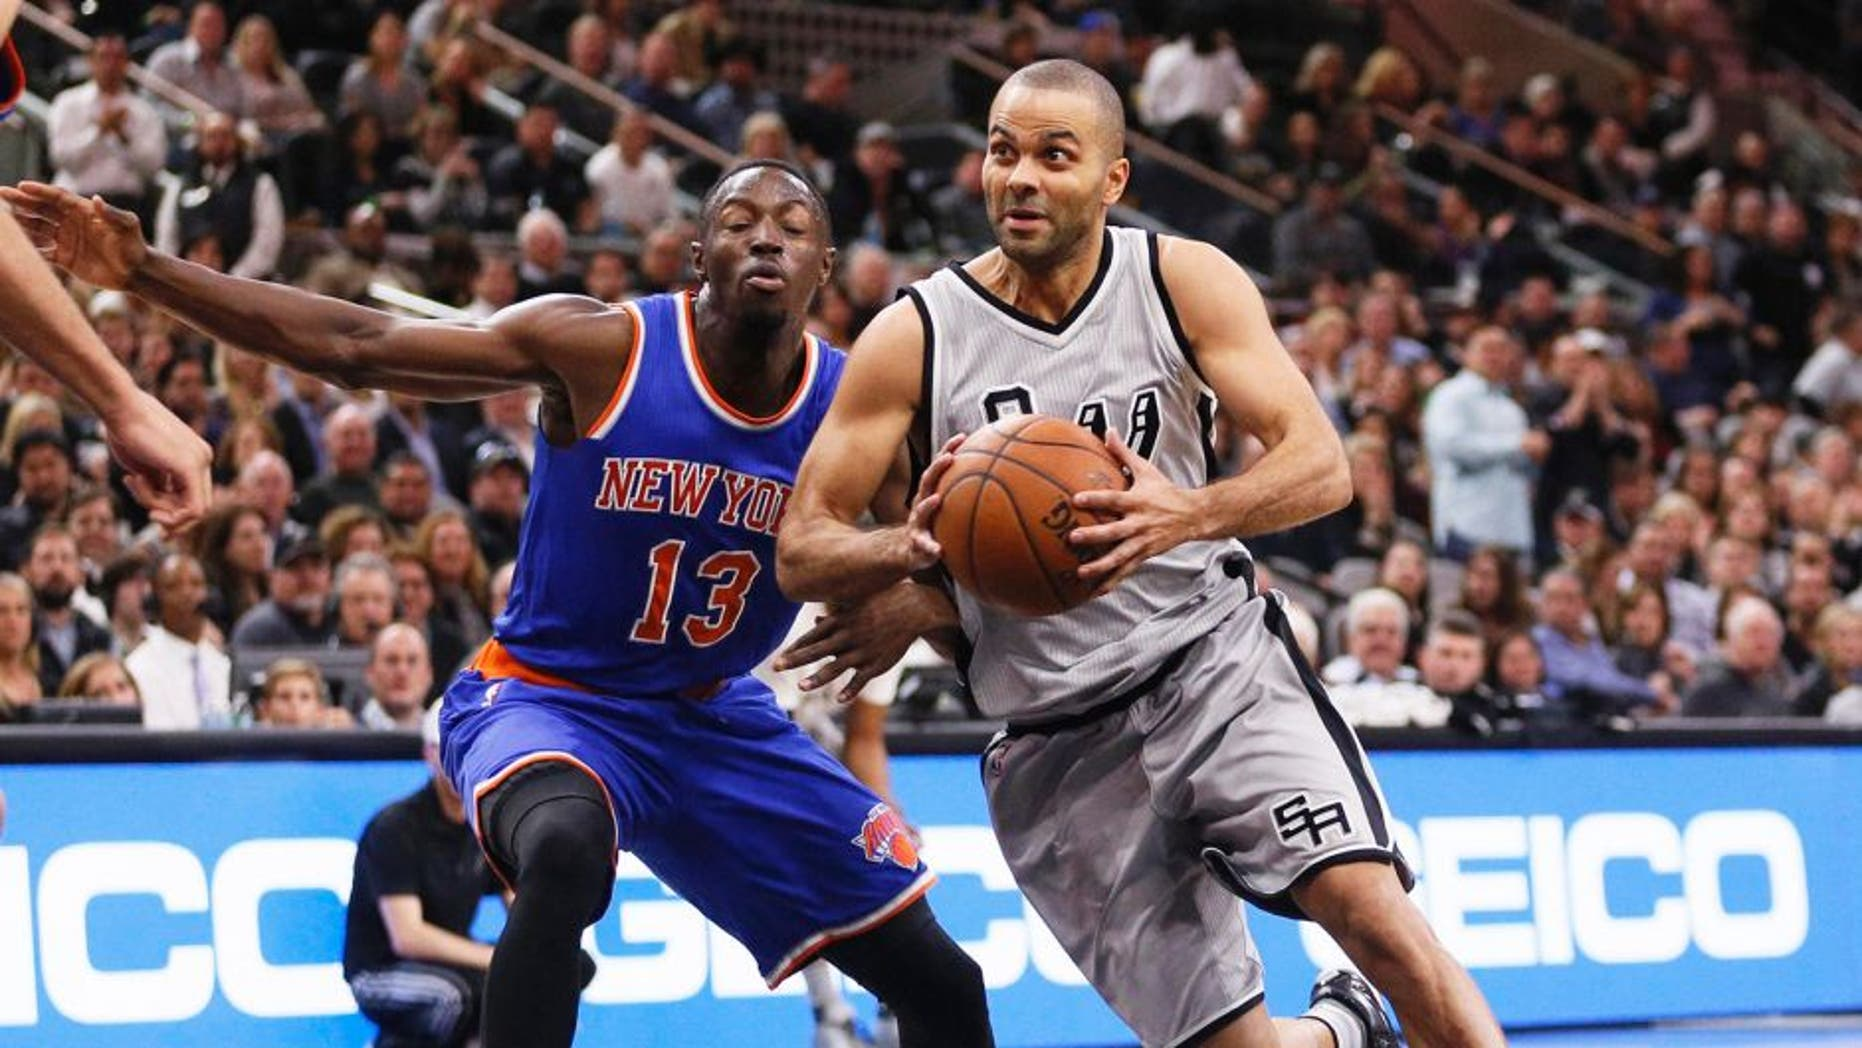 Jan 8, 2016; San Antonio, TX, USA; San Antonio Spurs point guard Tony Parker (right) drives to the basket around New York Knicks point guard Jerian Grant (13) during the first half at AT&T Center. Mandatory Credit: Soobum Im-USA TODAY Sports